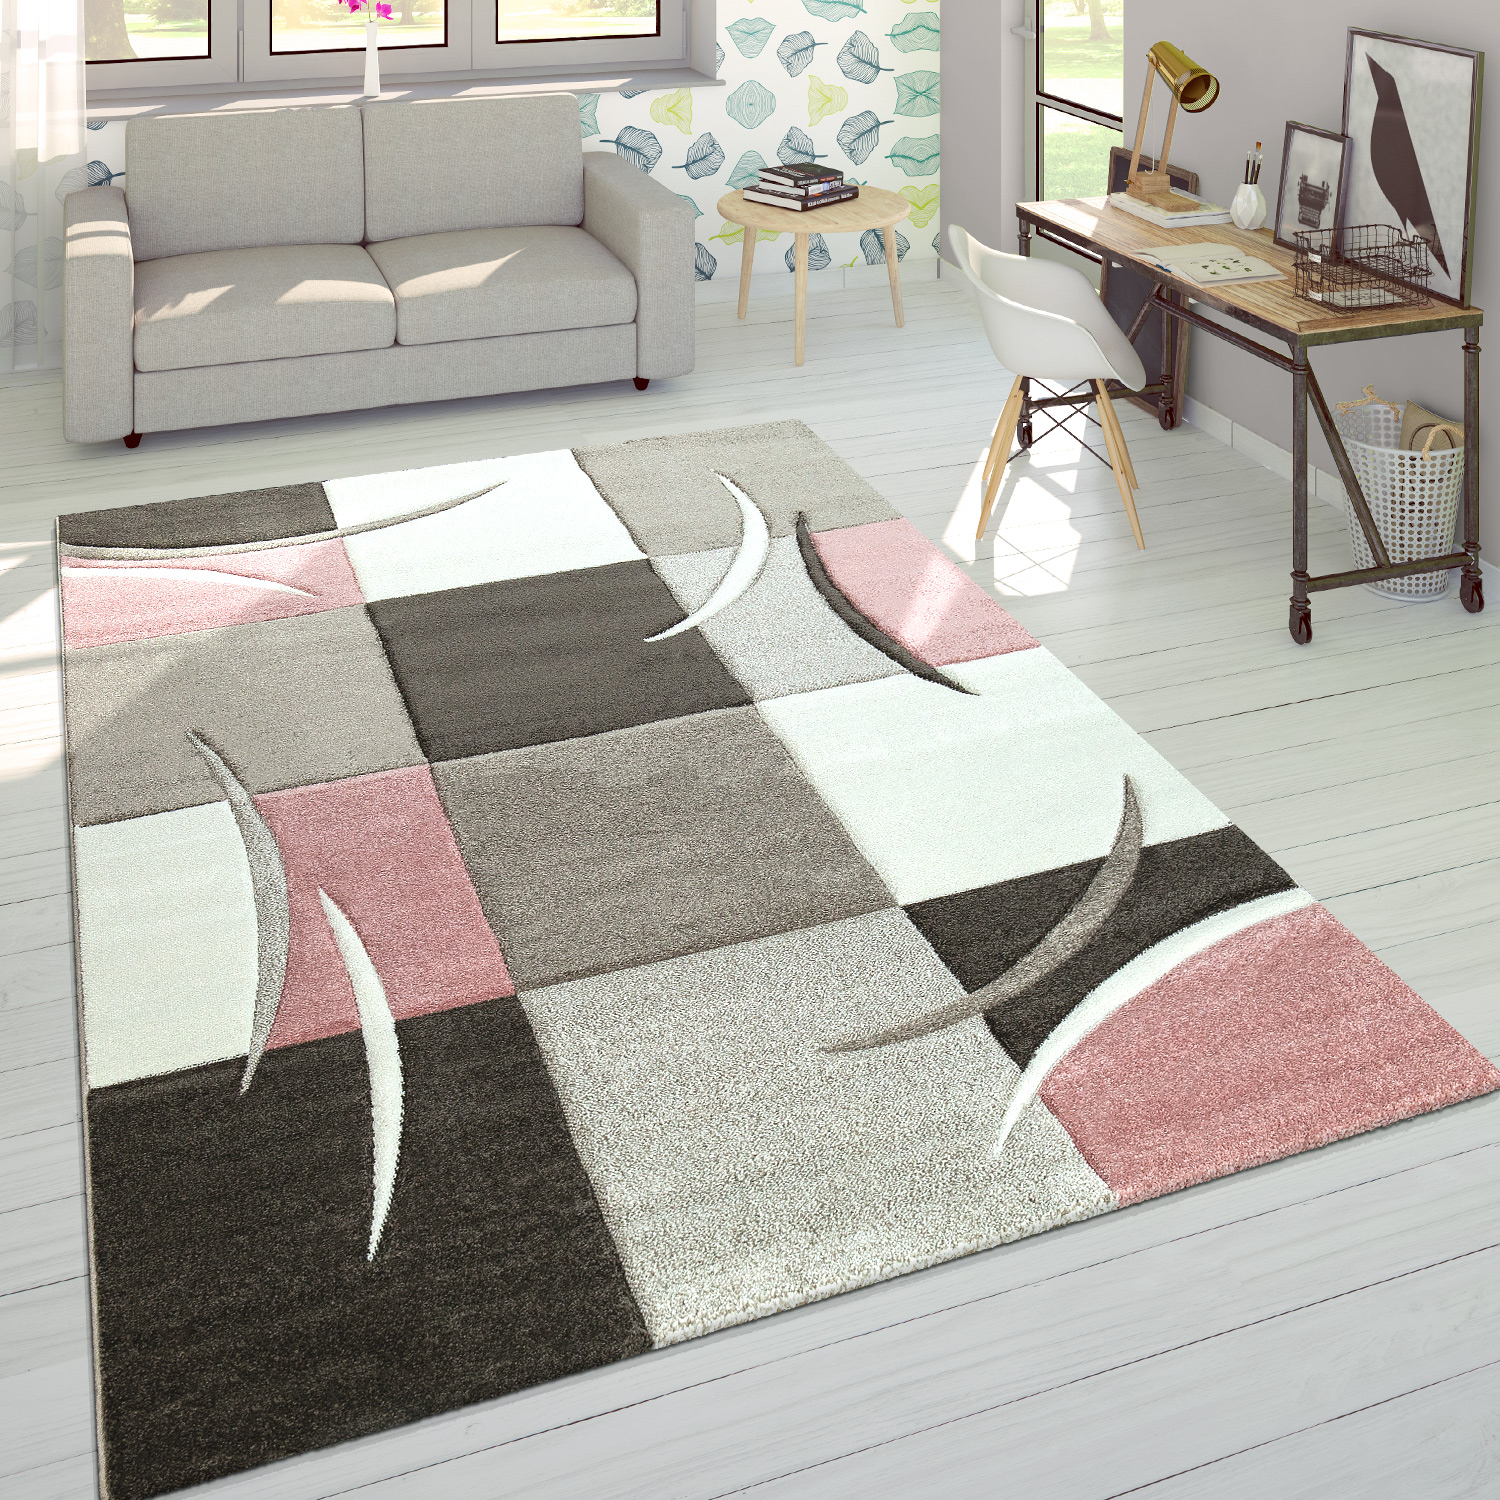 Designer Rug Modern Contour Cut Pastel Colours With Check Pattern In Beige Pink